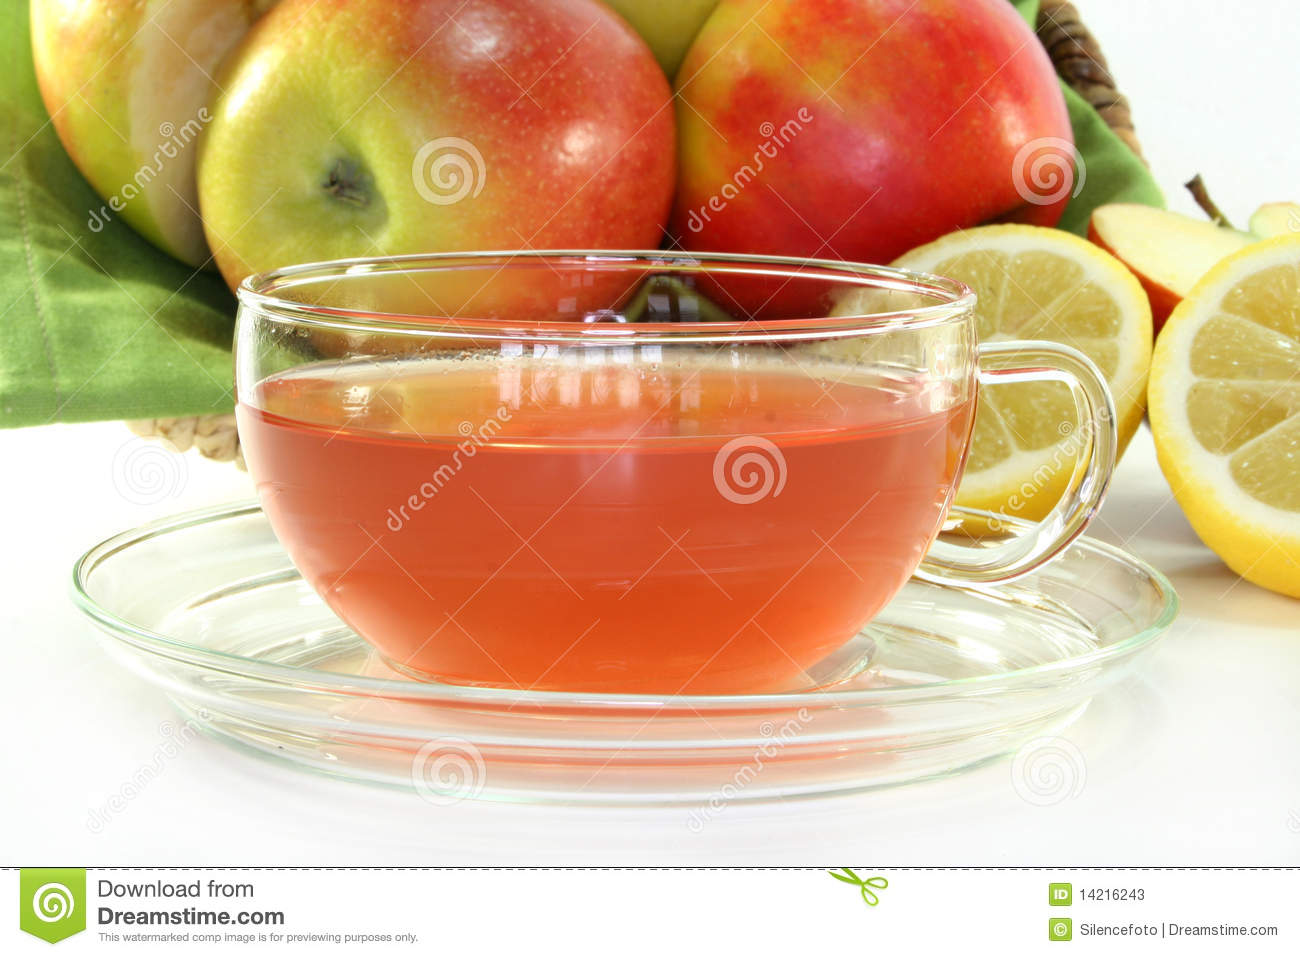 Apple Lemon Tea with fresh apples, lemons and vanilla.